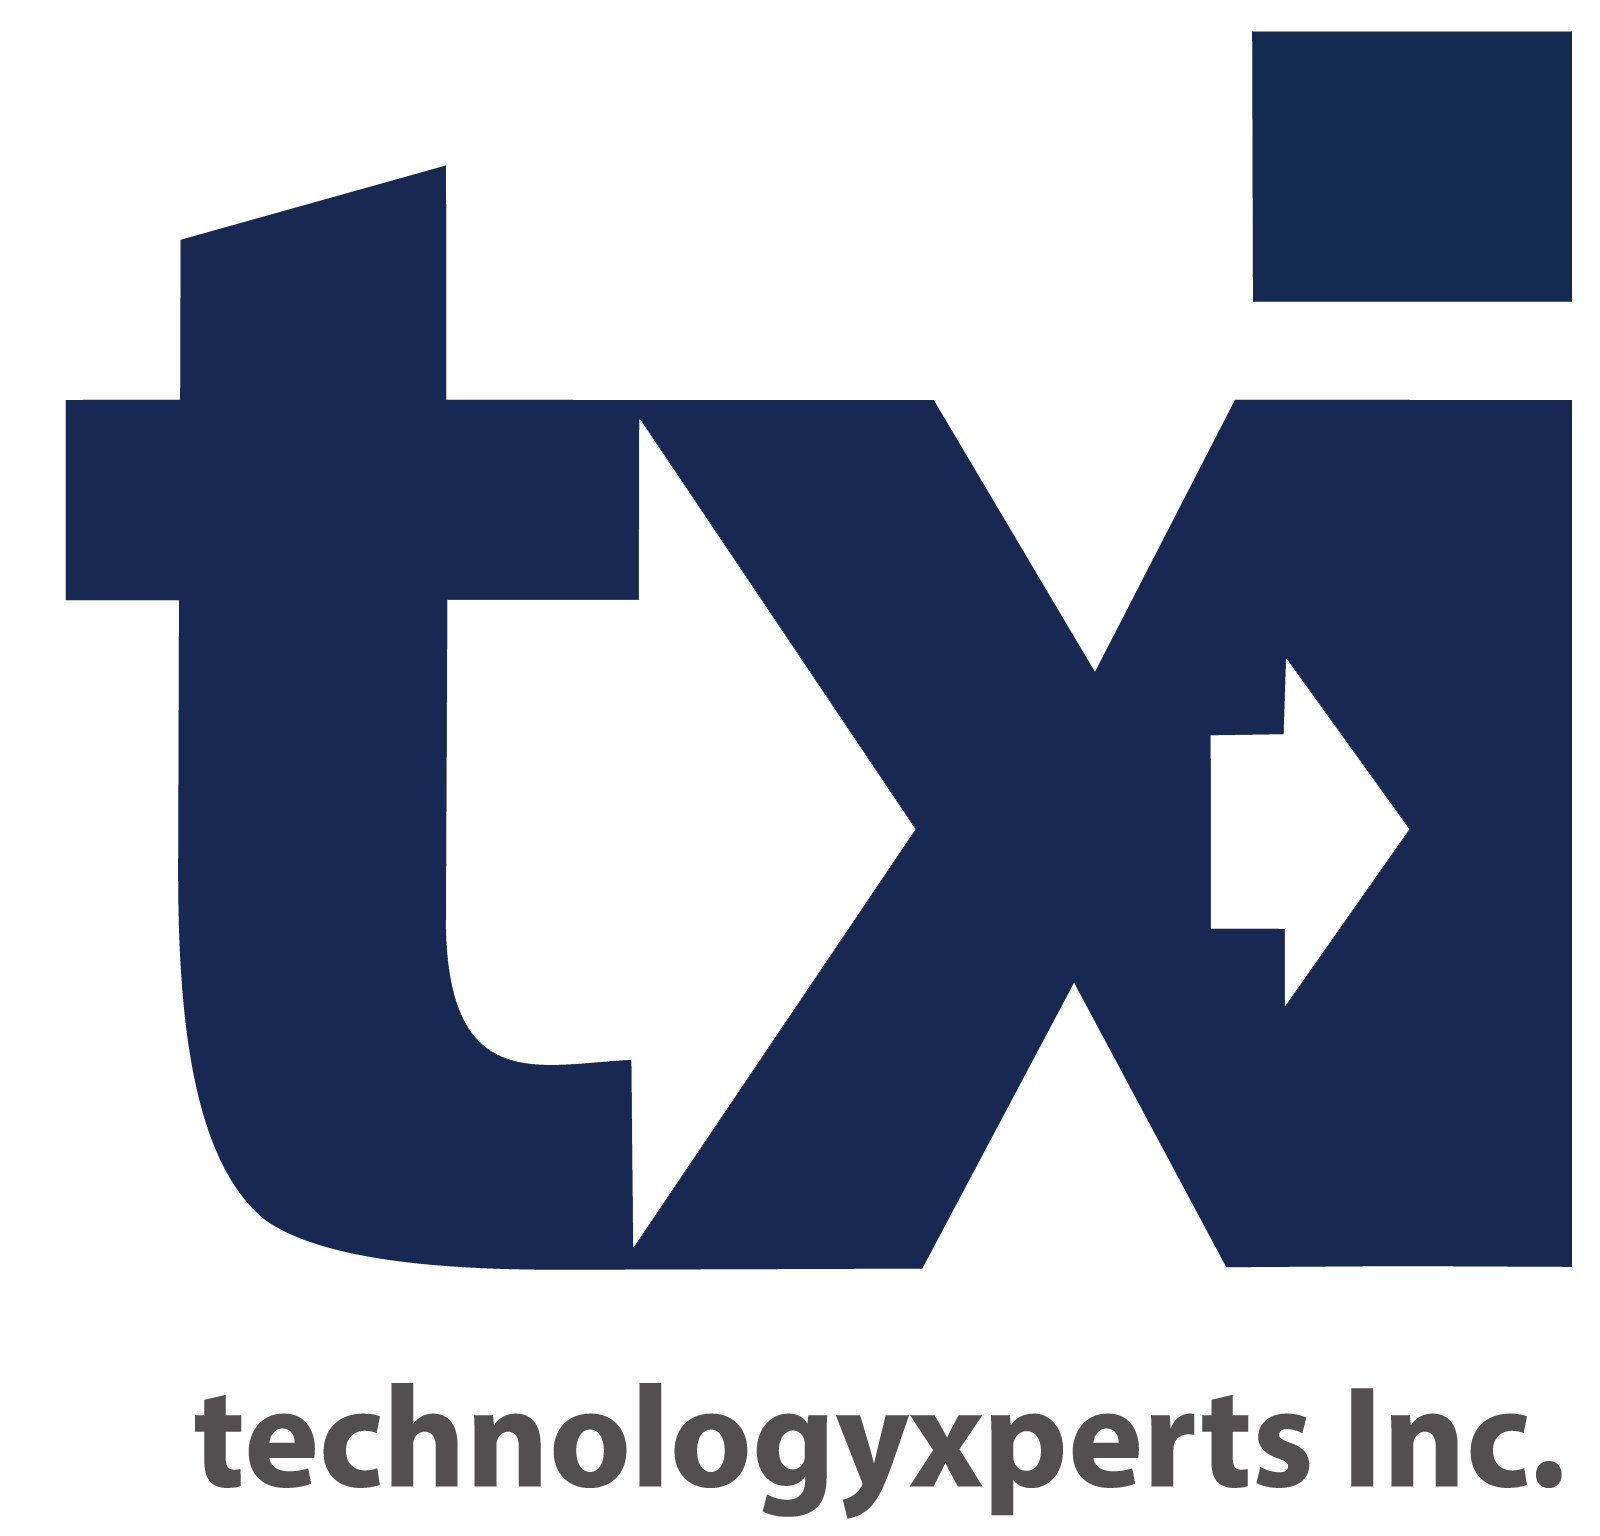 TechnologyXperts, Inc. Logo